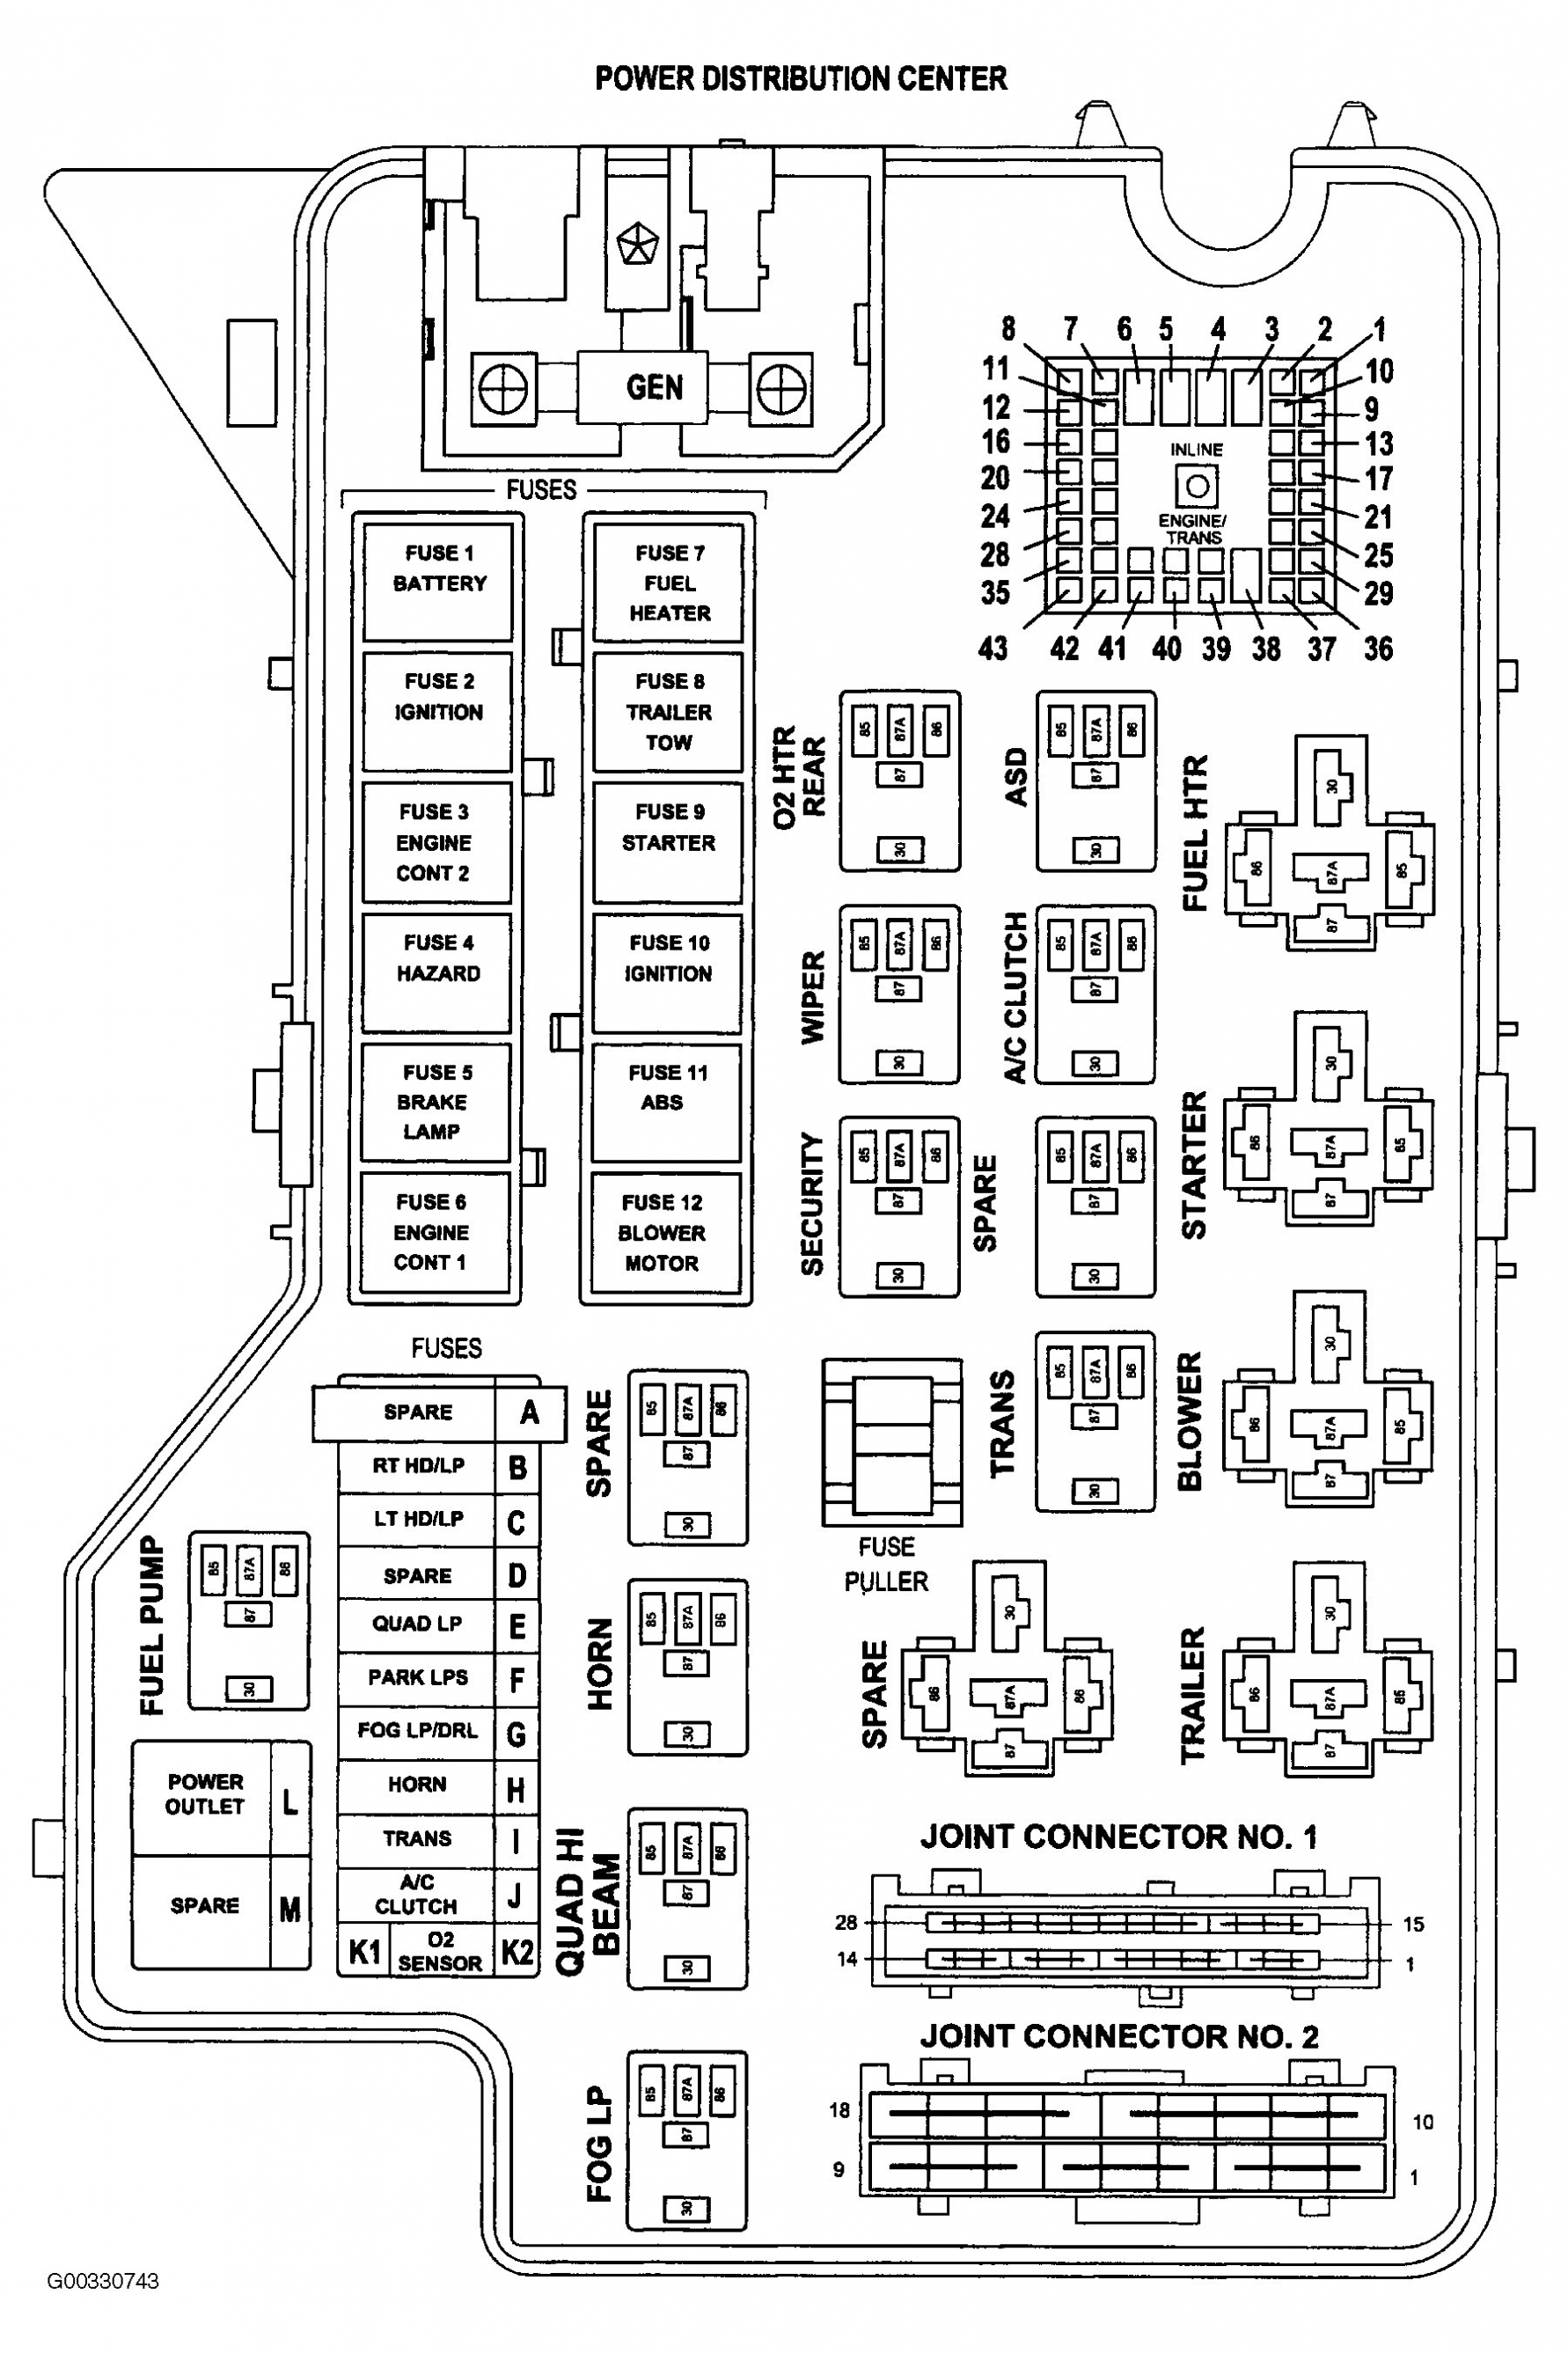 images?q=tbn:ANd9GcQh_l3eQ5xwiPy07kGEXjmjgmBKBRB7H2mRxCGhv1tFWg5c_mWT 2019 International Truck Fuse Panel Diagram